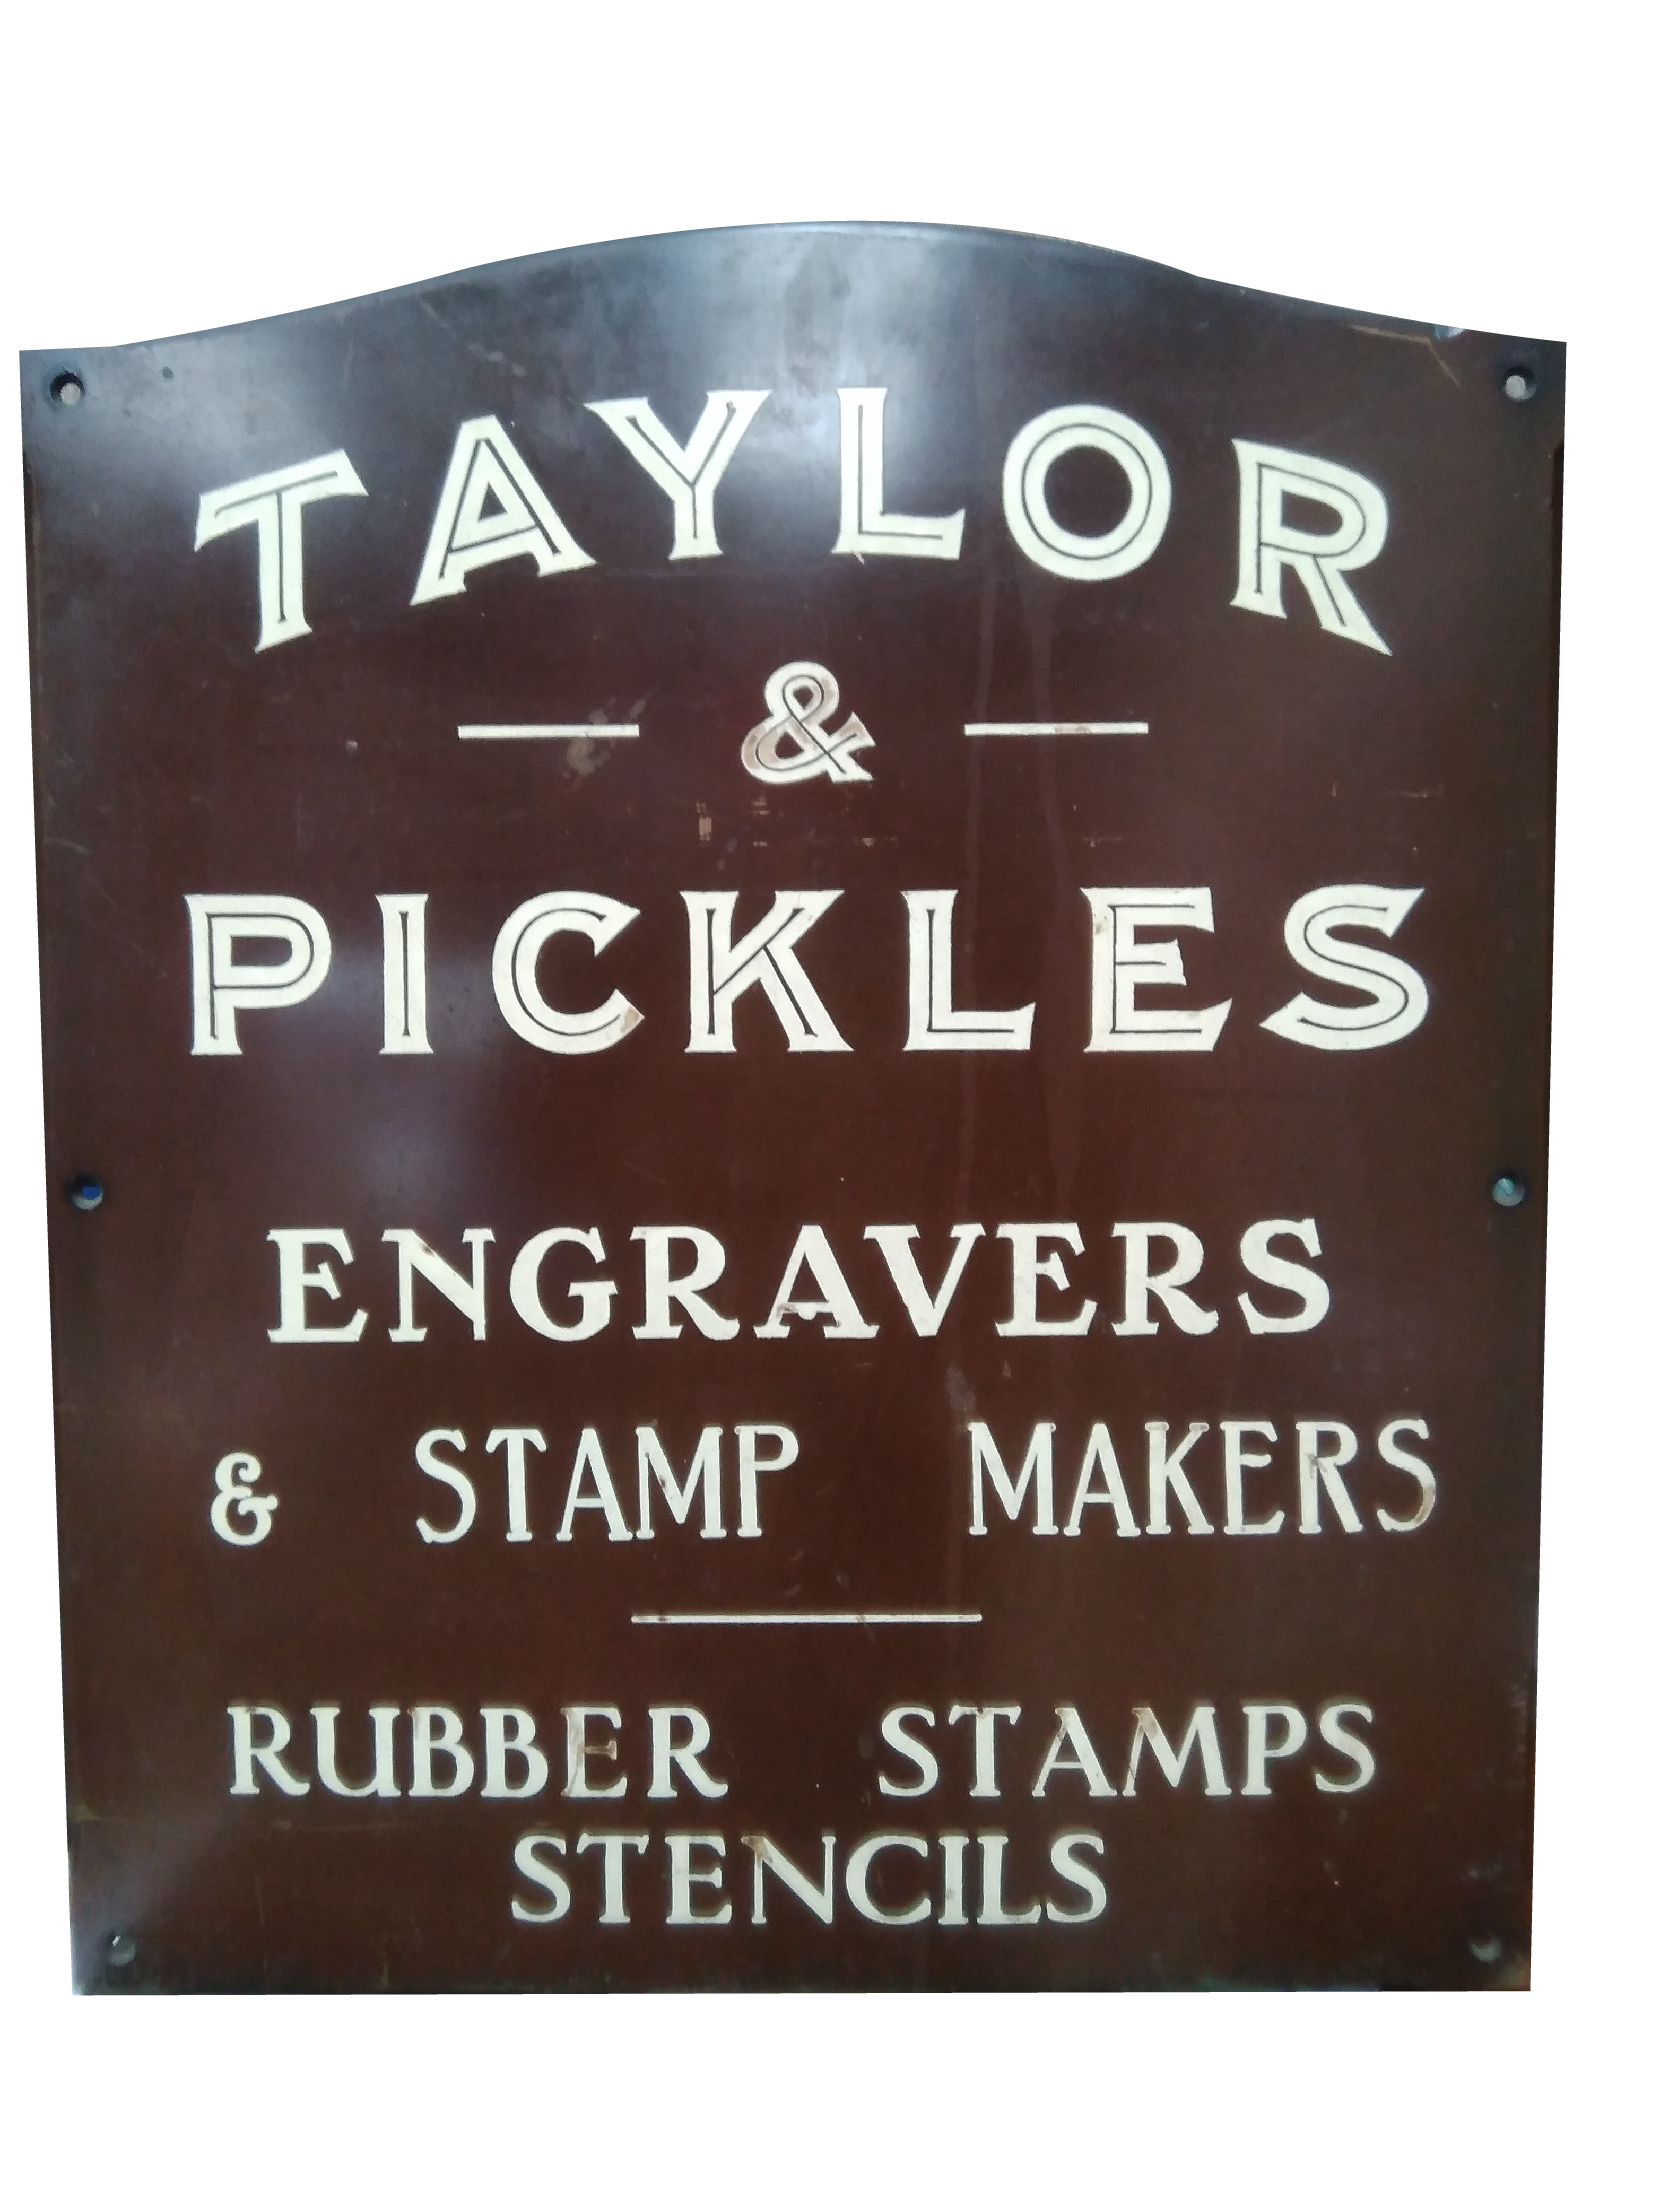 Taylor & Pickles Building